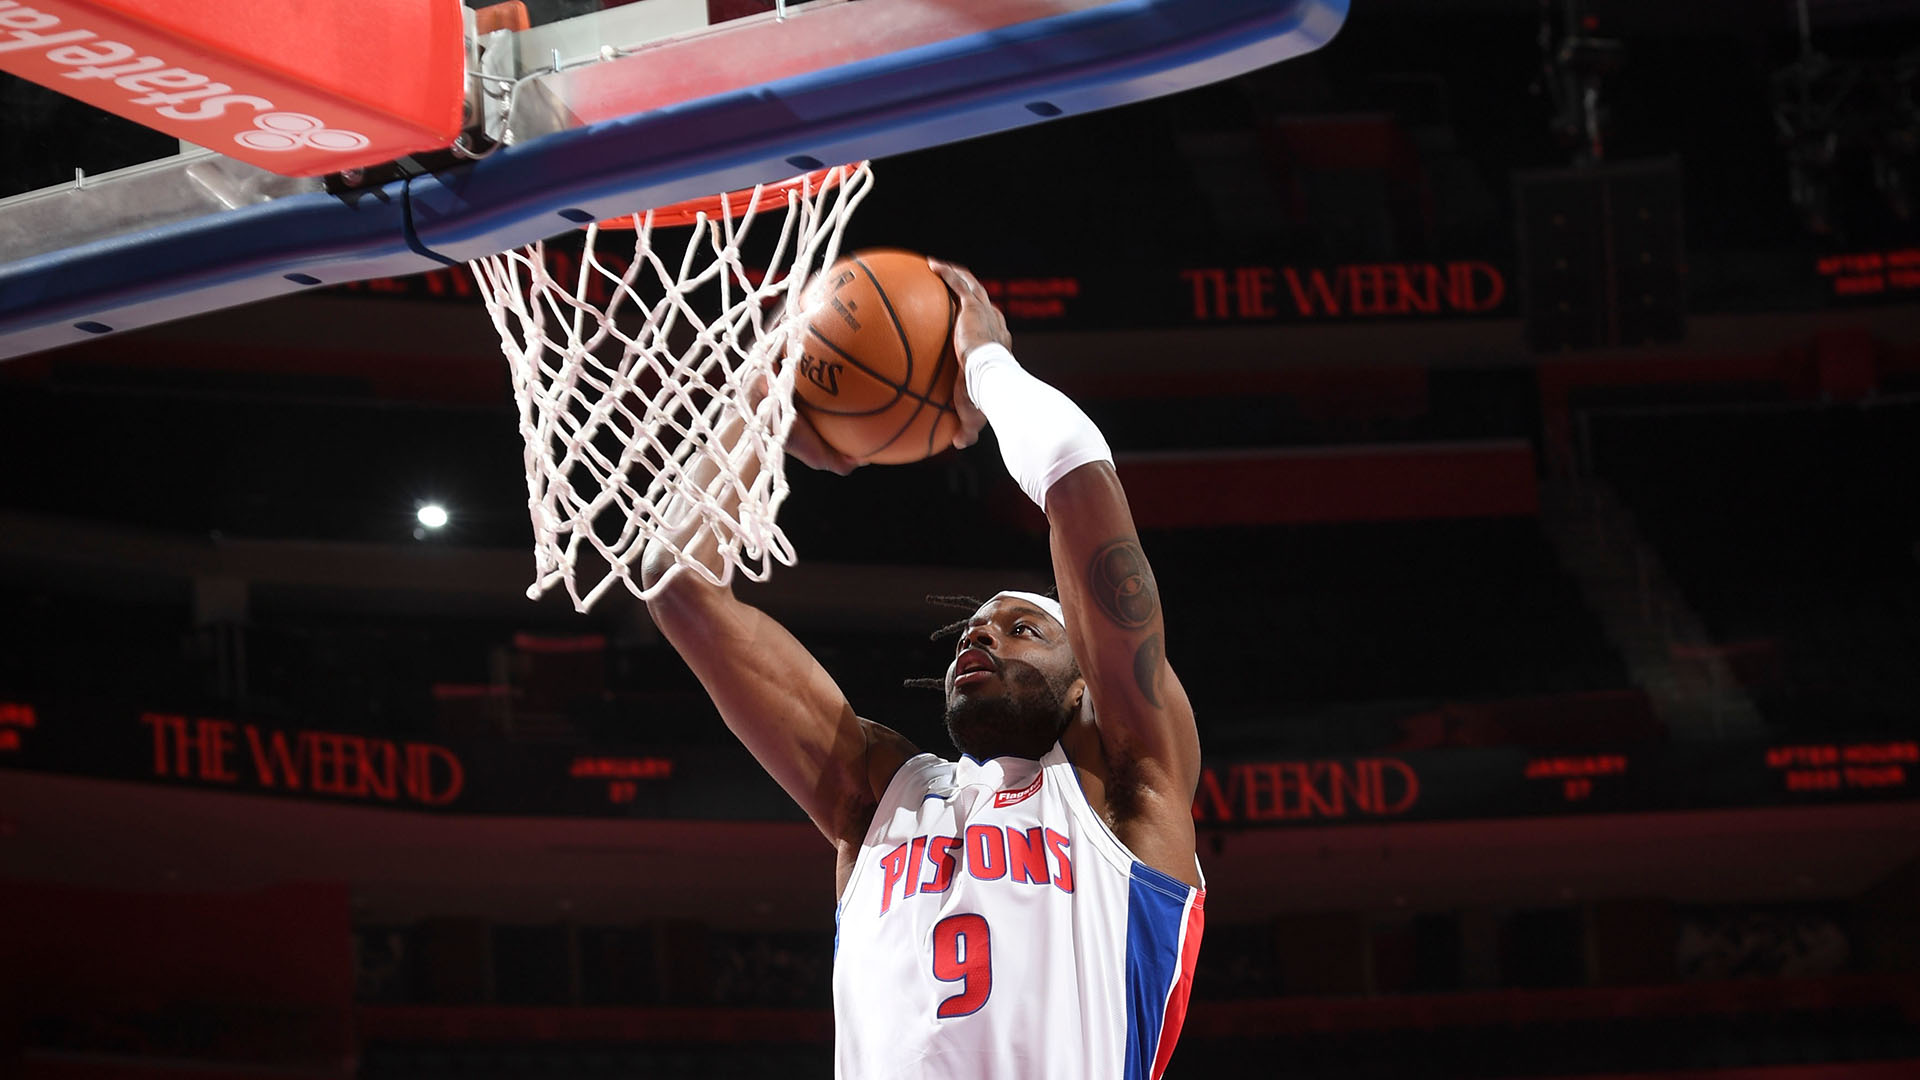 Dunk of the Week, presented by Draft Kings: Jerami Grant